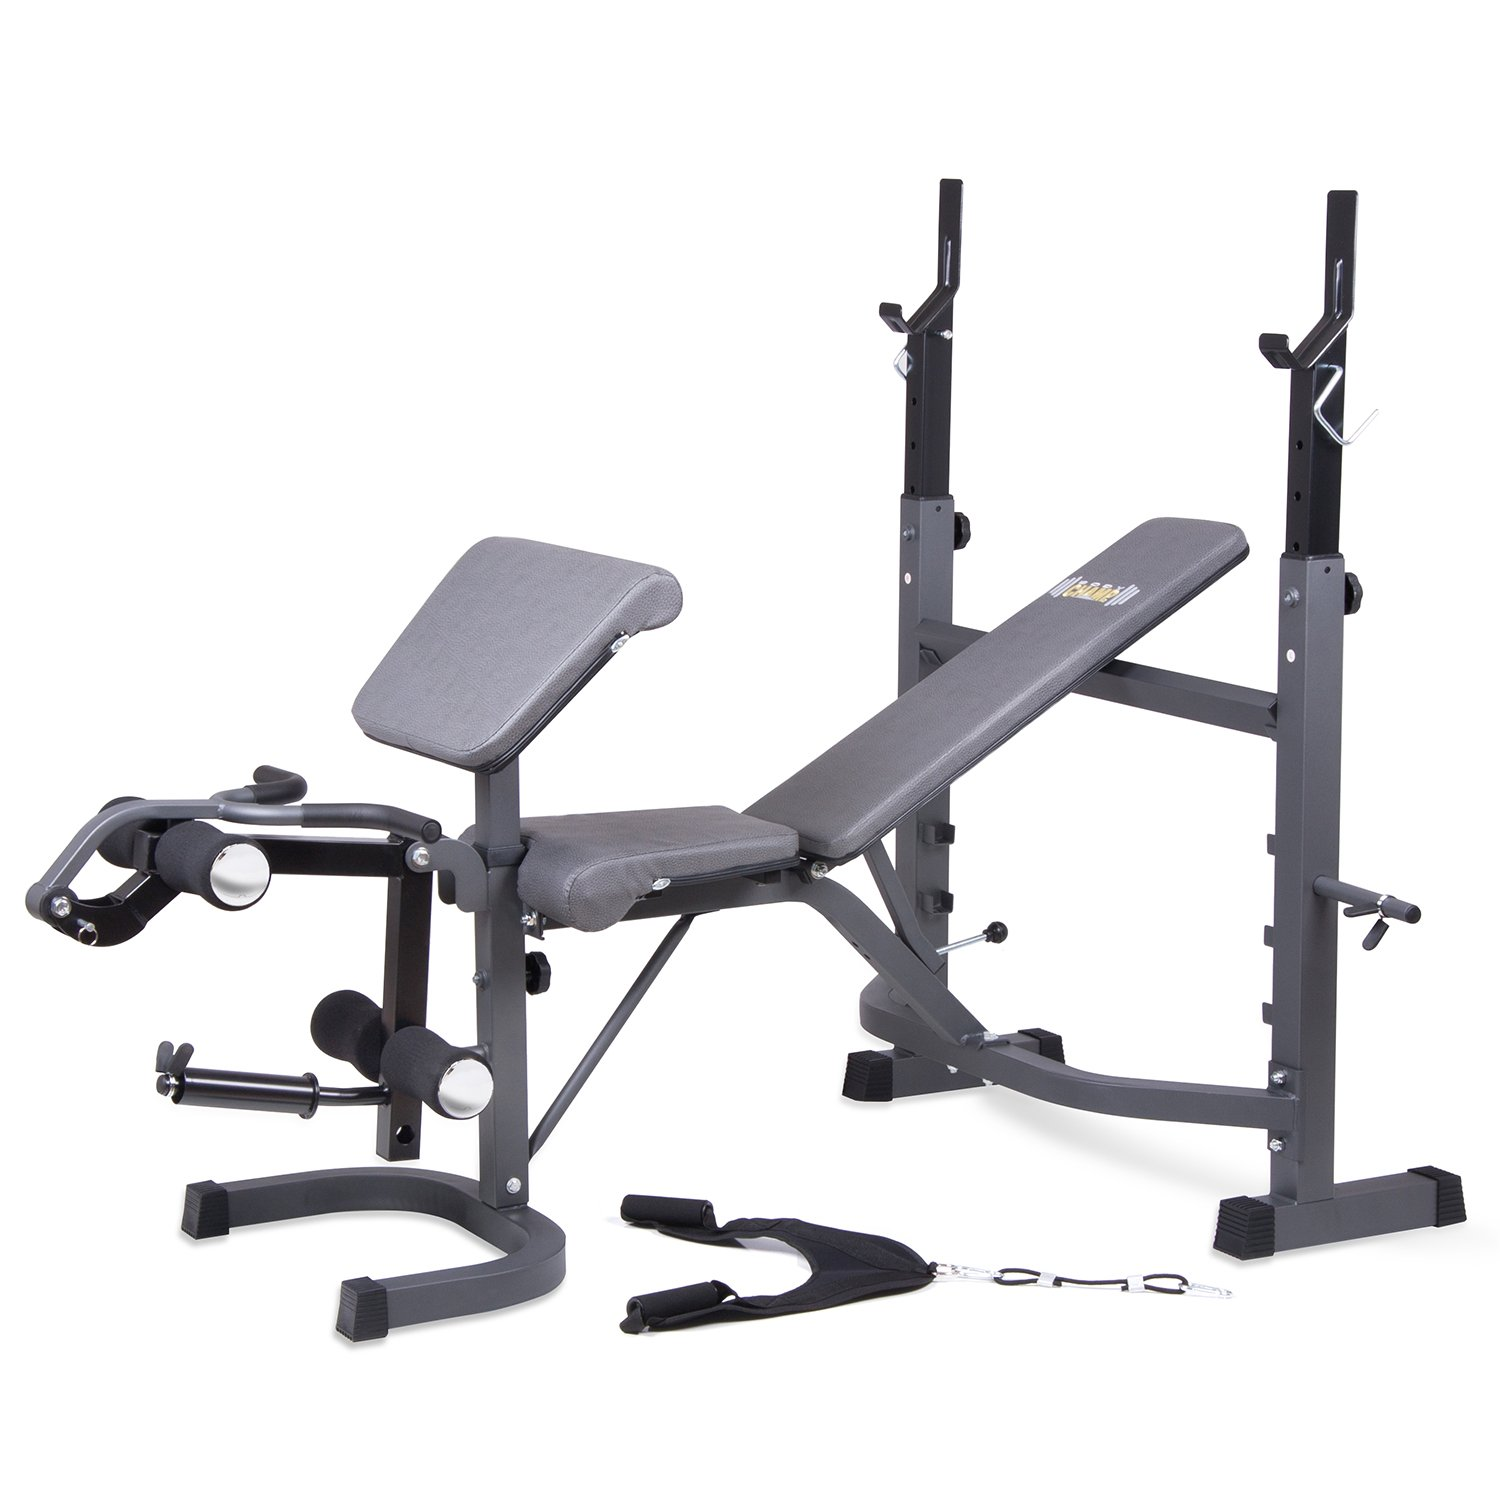 Body Champ BCB5860 Black Friday Fitness Cyber Monday PROMO! / Olympic Weight Bench with Preacher Curl, Leg Developer and Crunch Handle, Dark Gray/Black by Body Champ